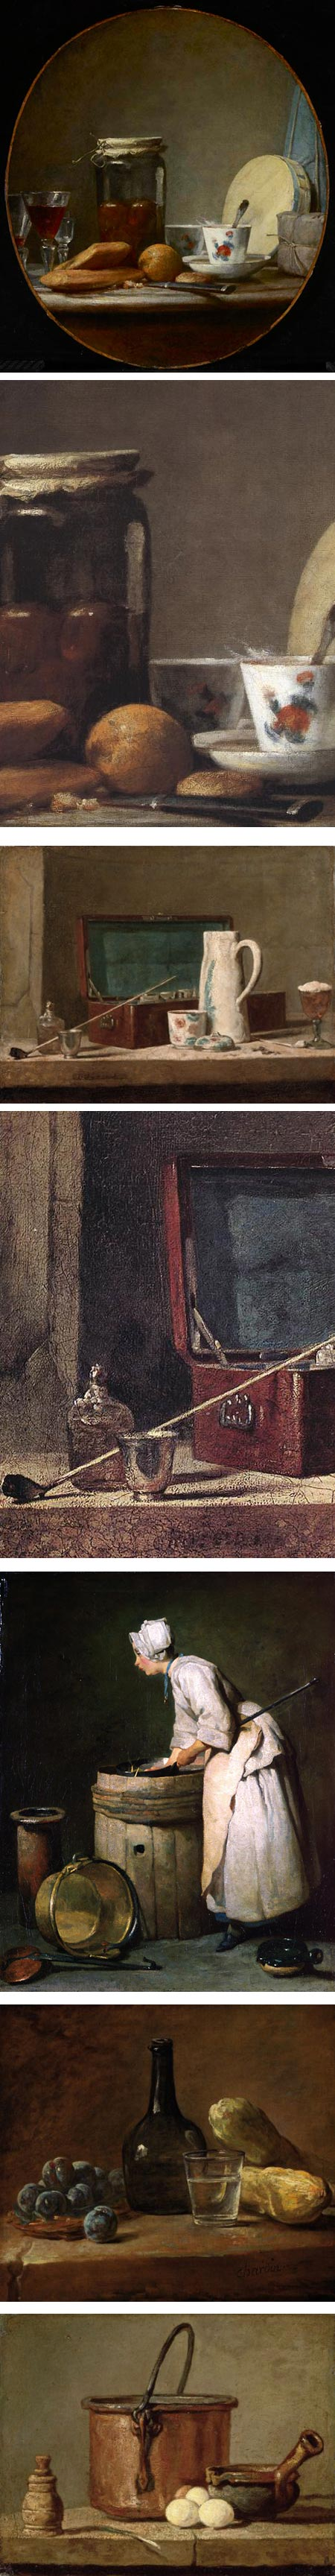 Jean baptiste SimeonChardin: Painter of Silence